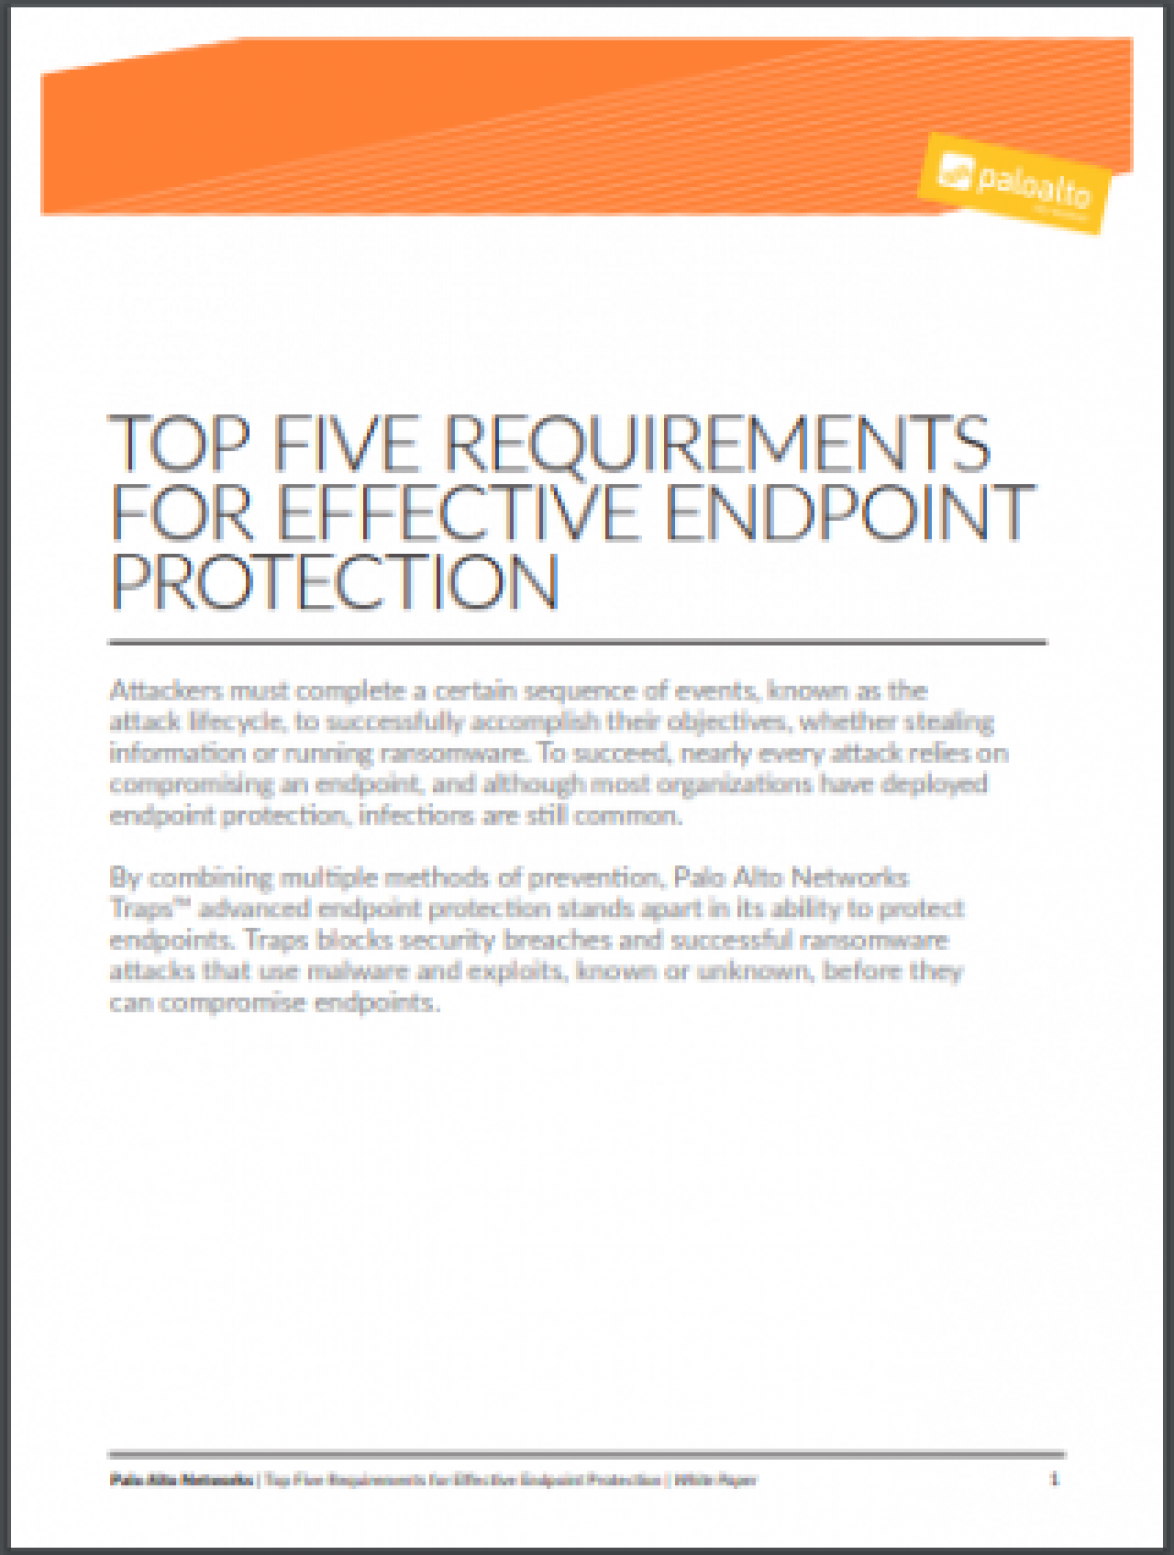 5 Requirements for Effective Endpoint Protection